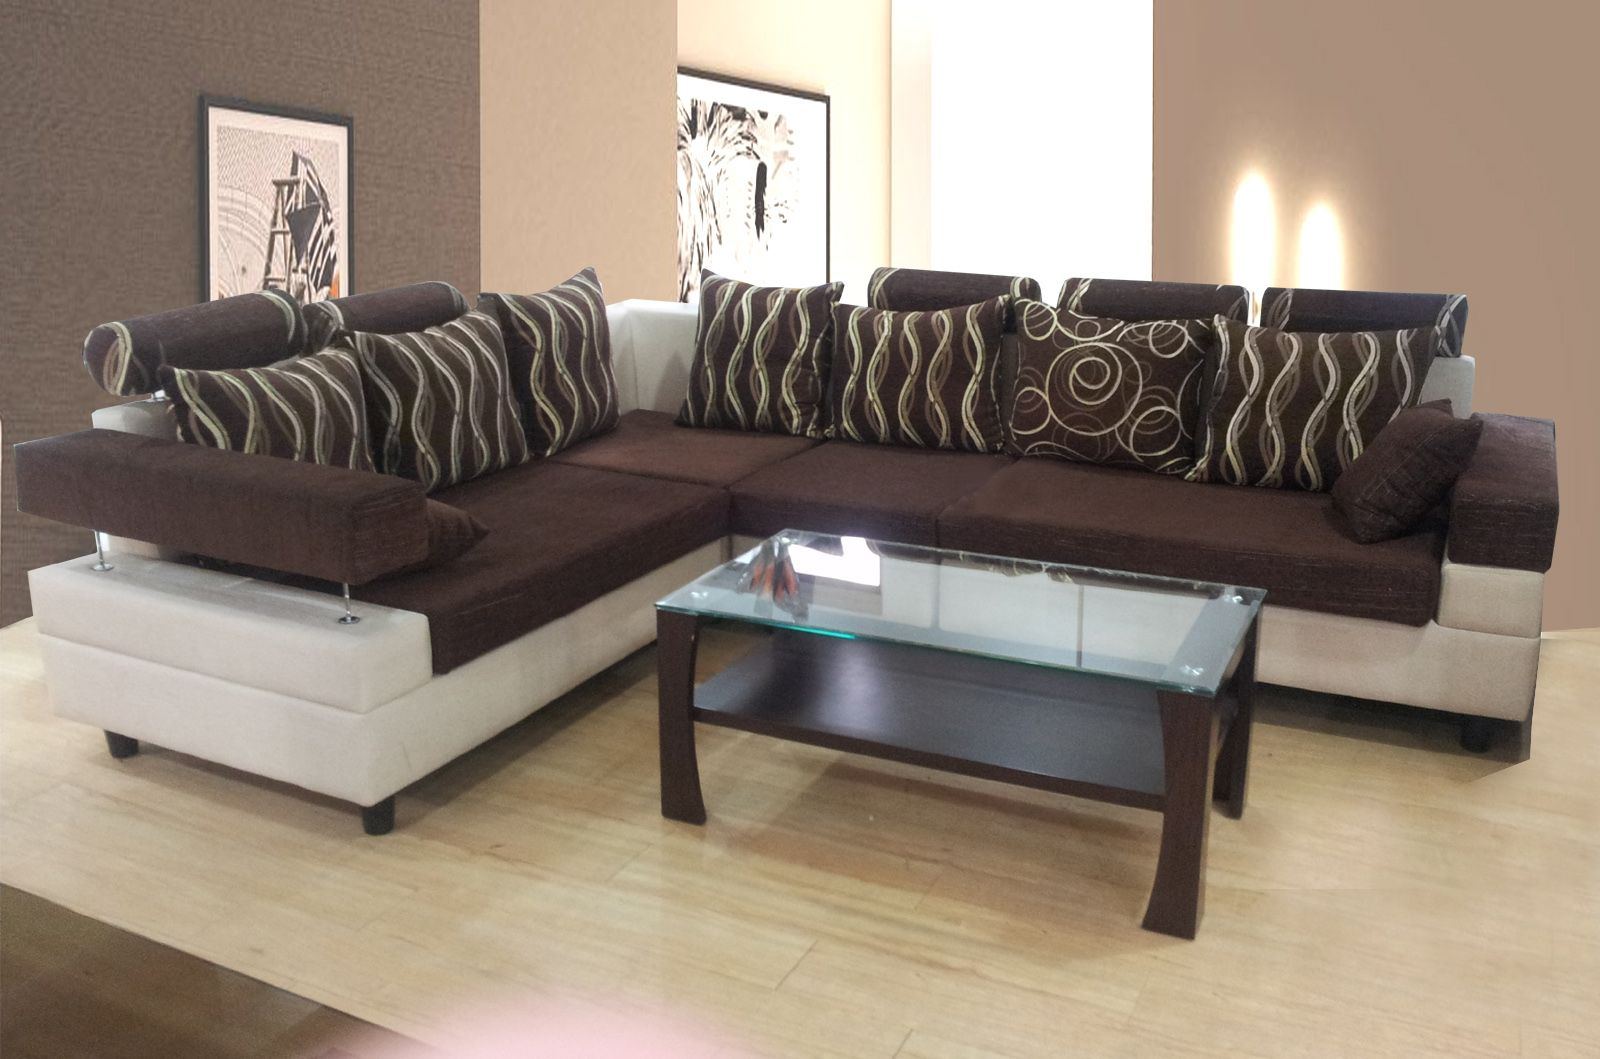 Nairobi Luxe Sofa Sets: Welcome to Nairobi Luxe Furniture Designs